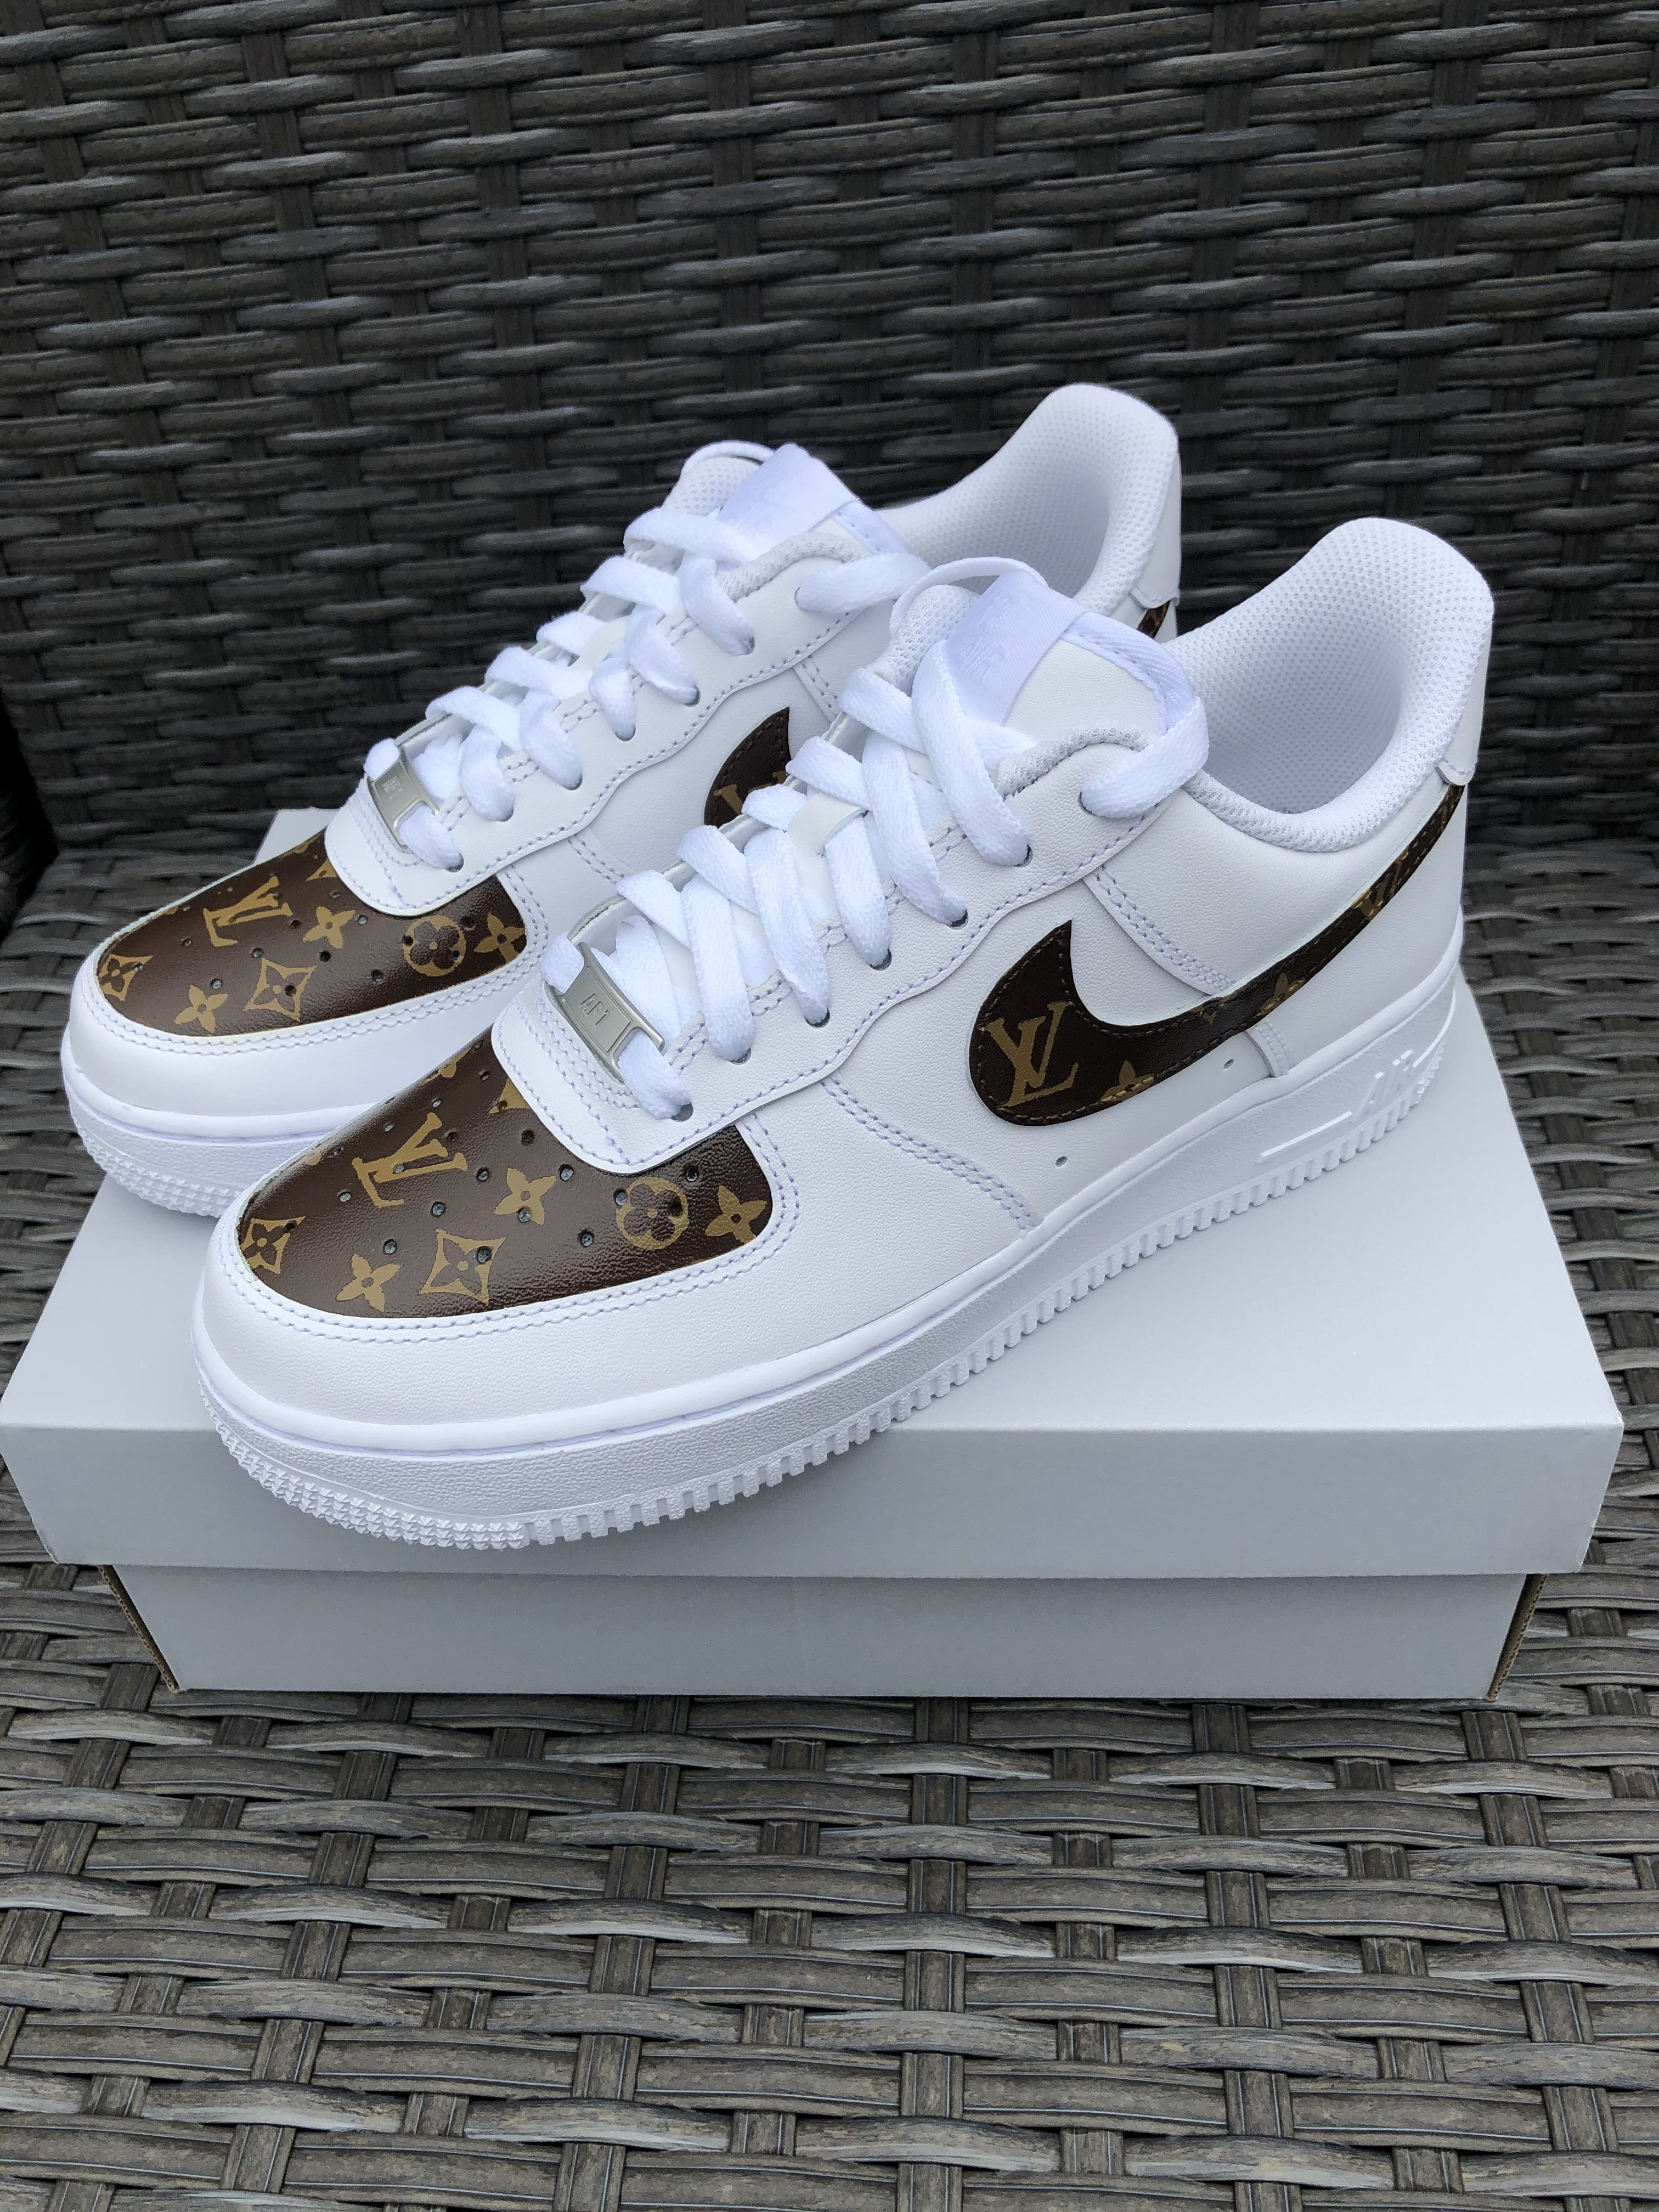 13+ Nike love letter air force 1 release date trends